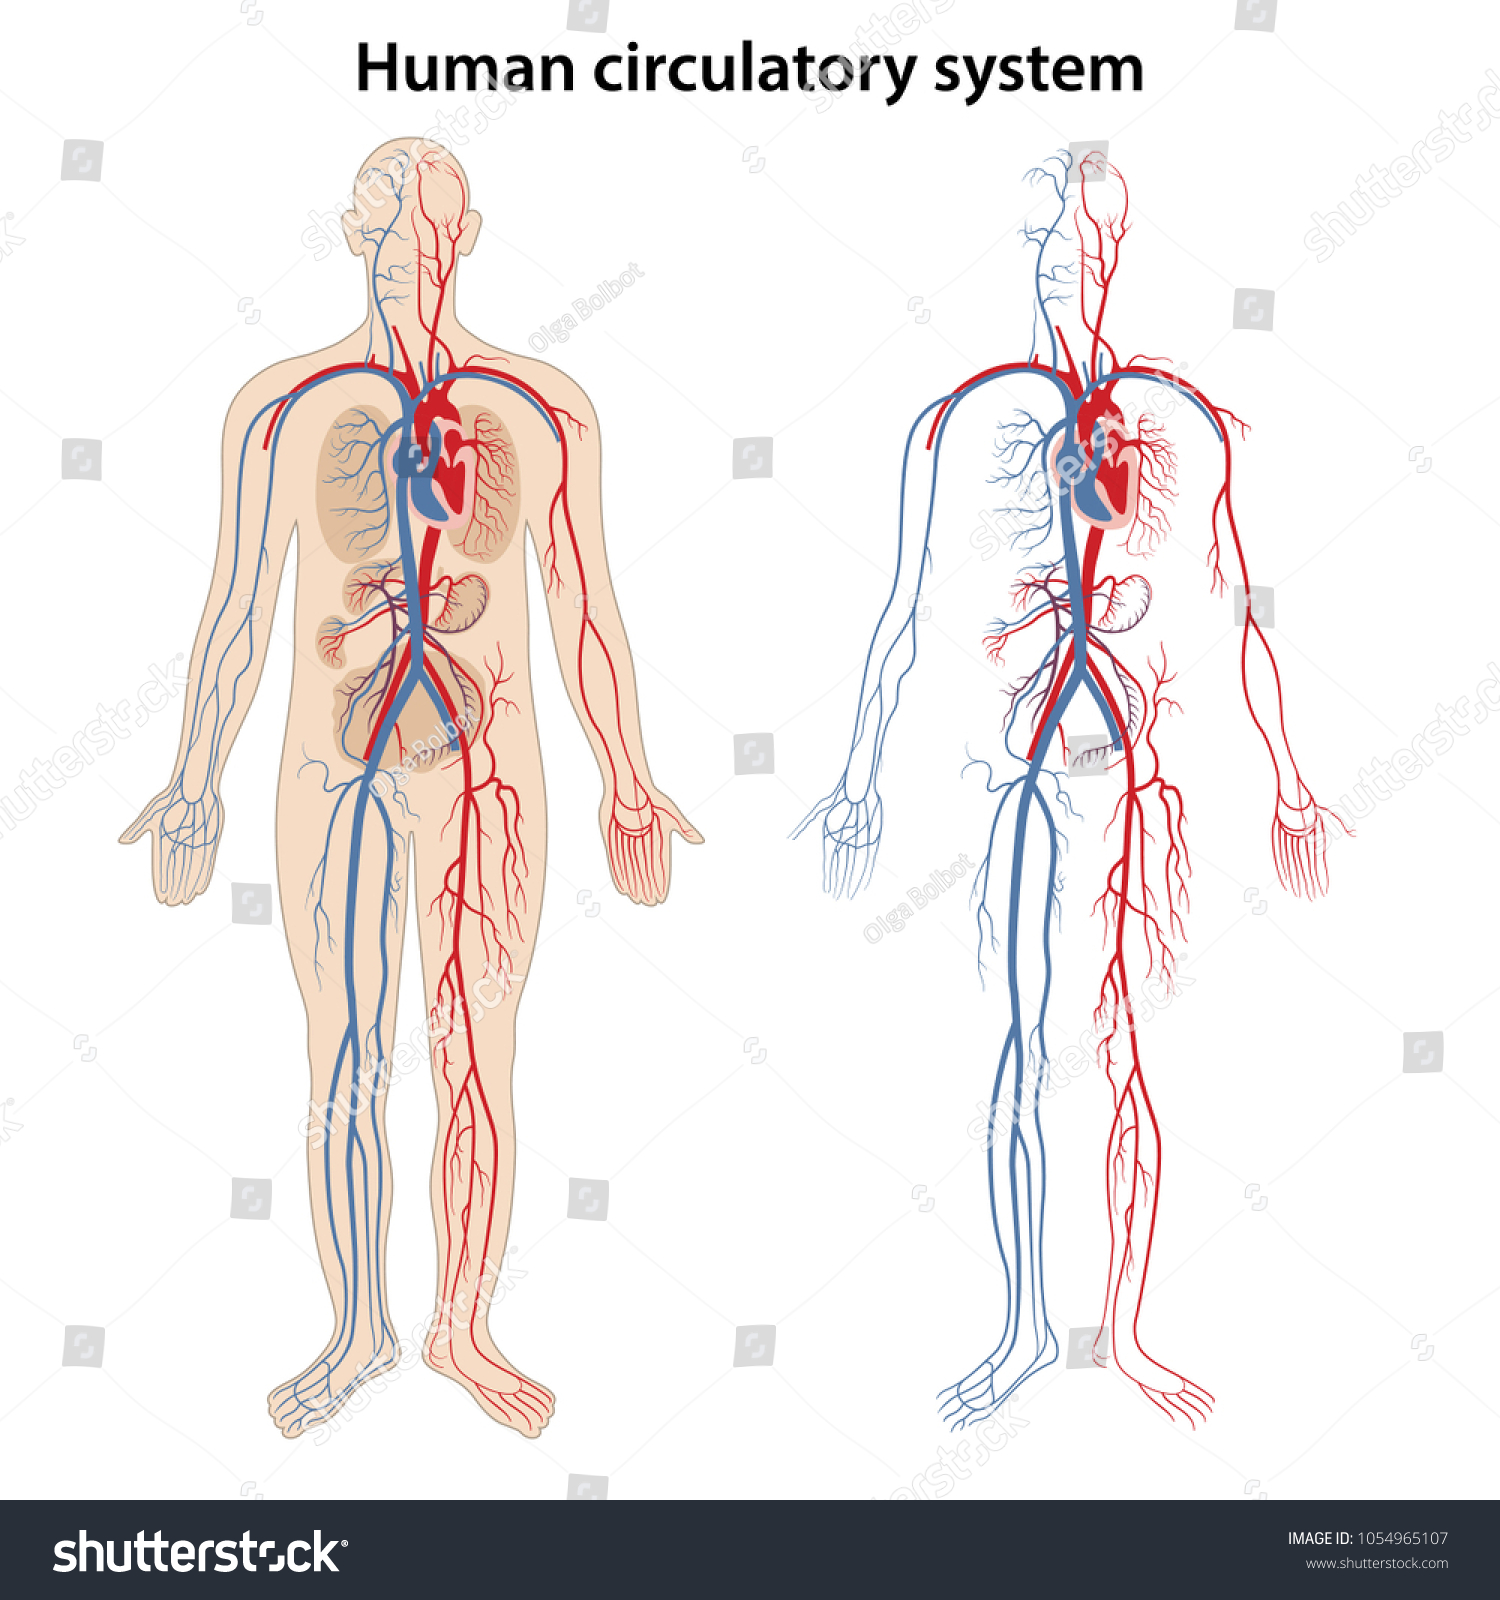 Human Arterial Venous Circulatory System Vector Stock Vektorgrafik